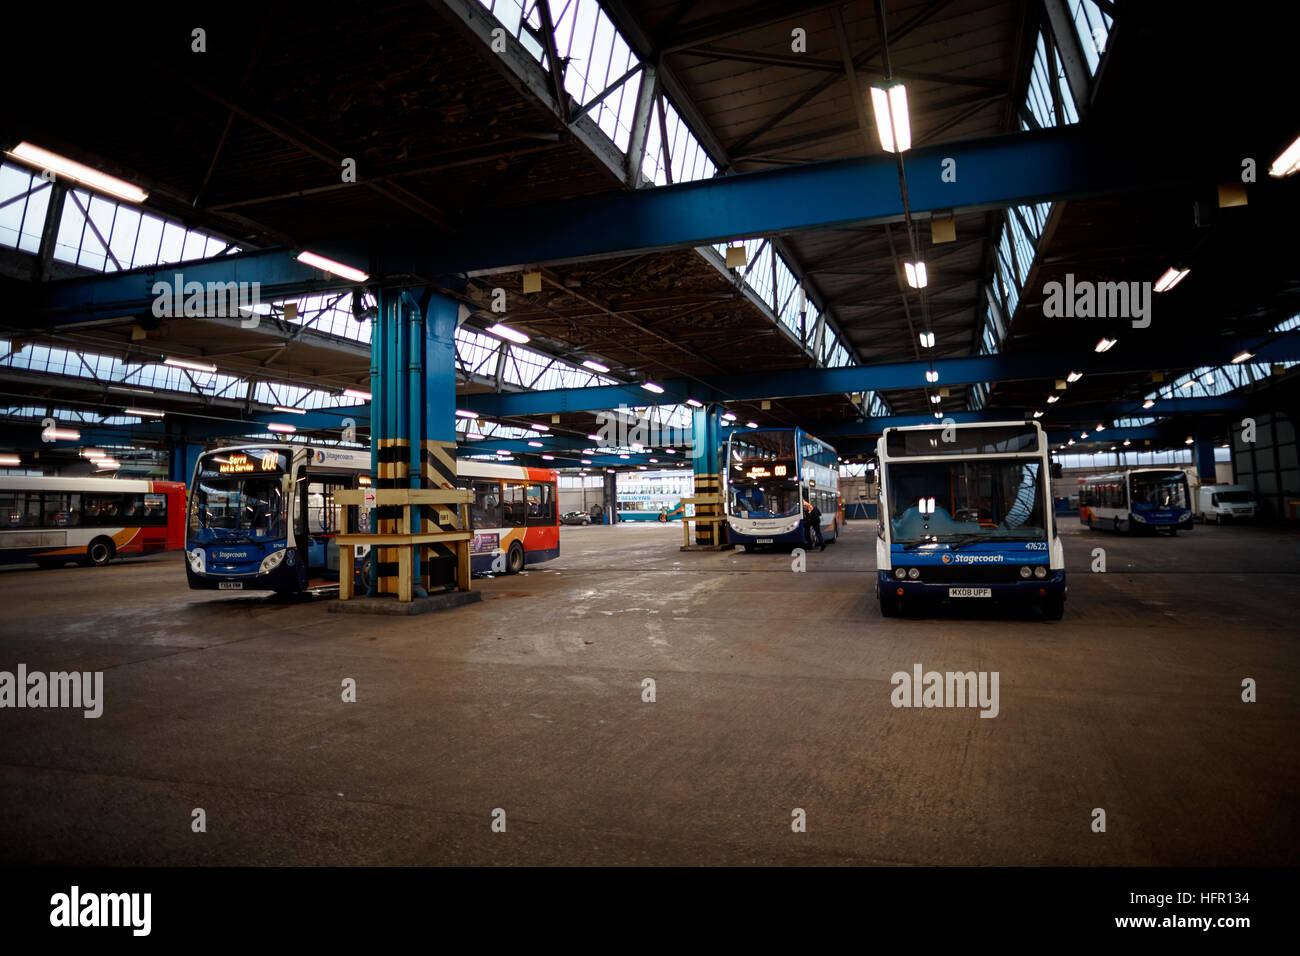 Stockport Bus Depot Stagecoach  Bus buses stopped double decker single fleet coach company livery route services - Stock Image